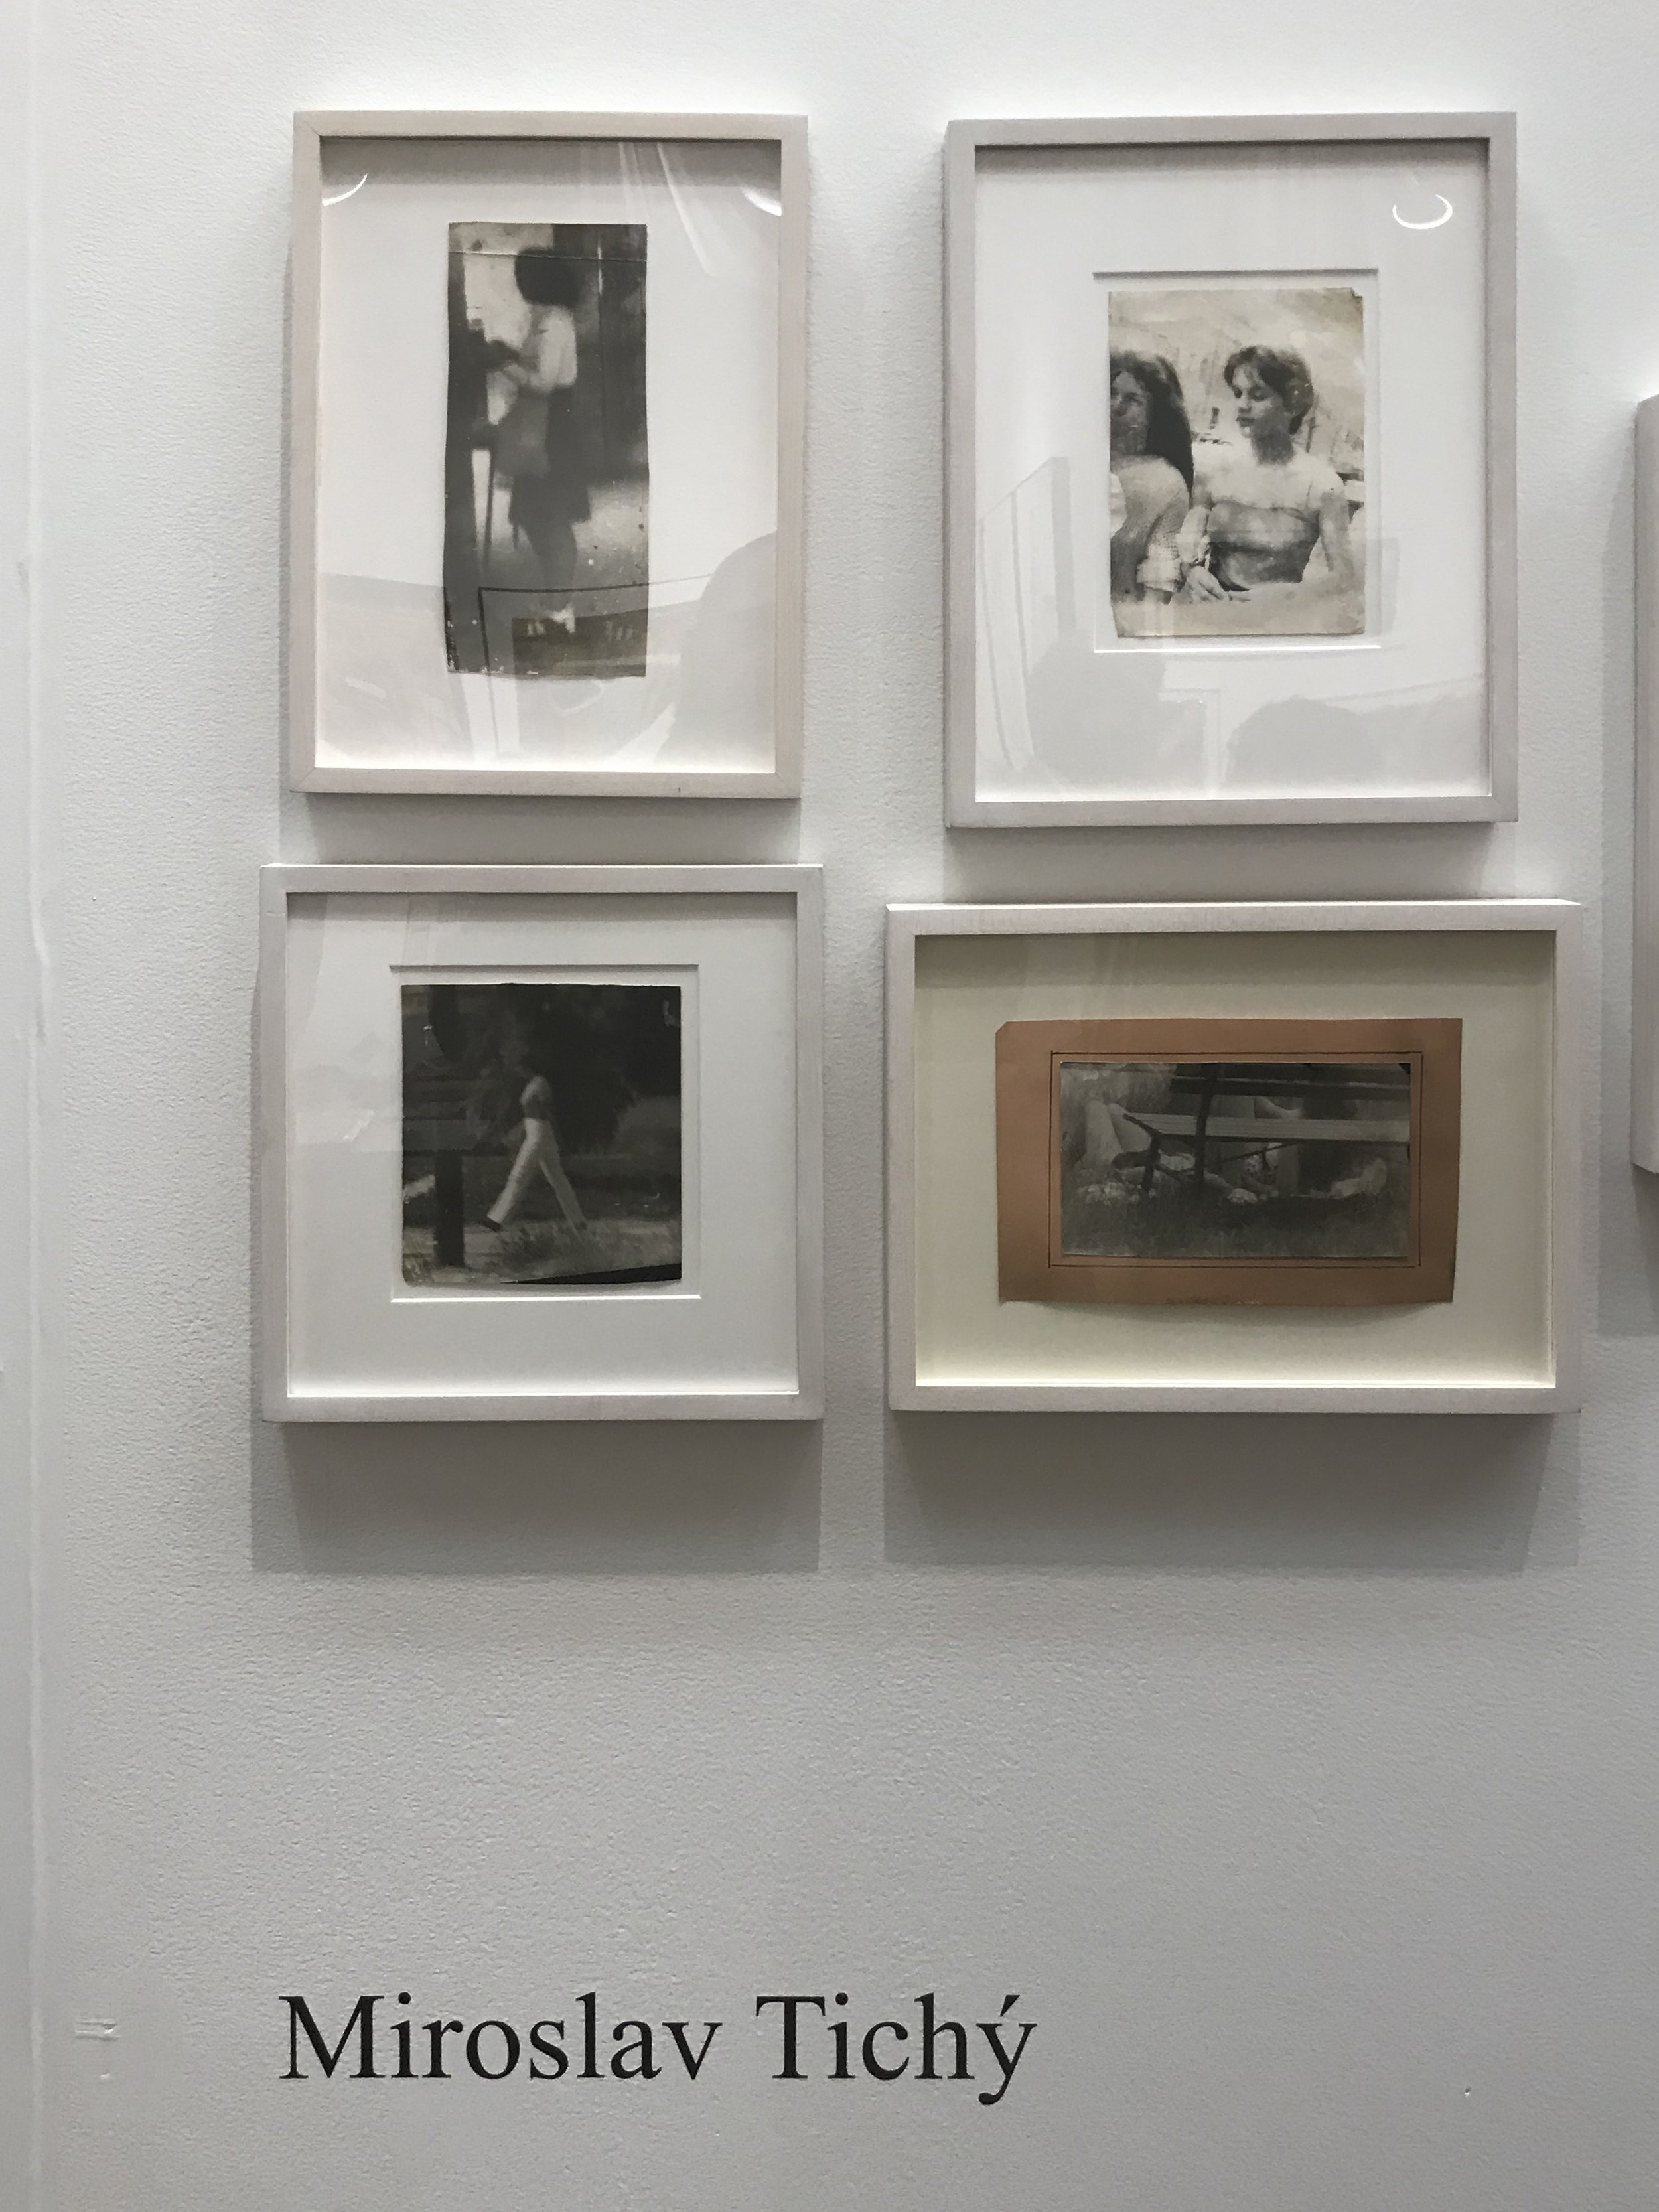 Photos by Miroslav Tichý